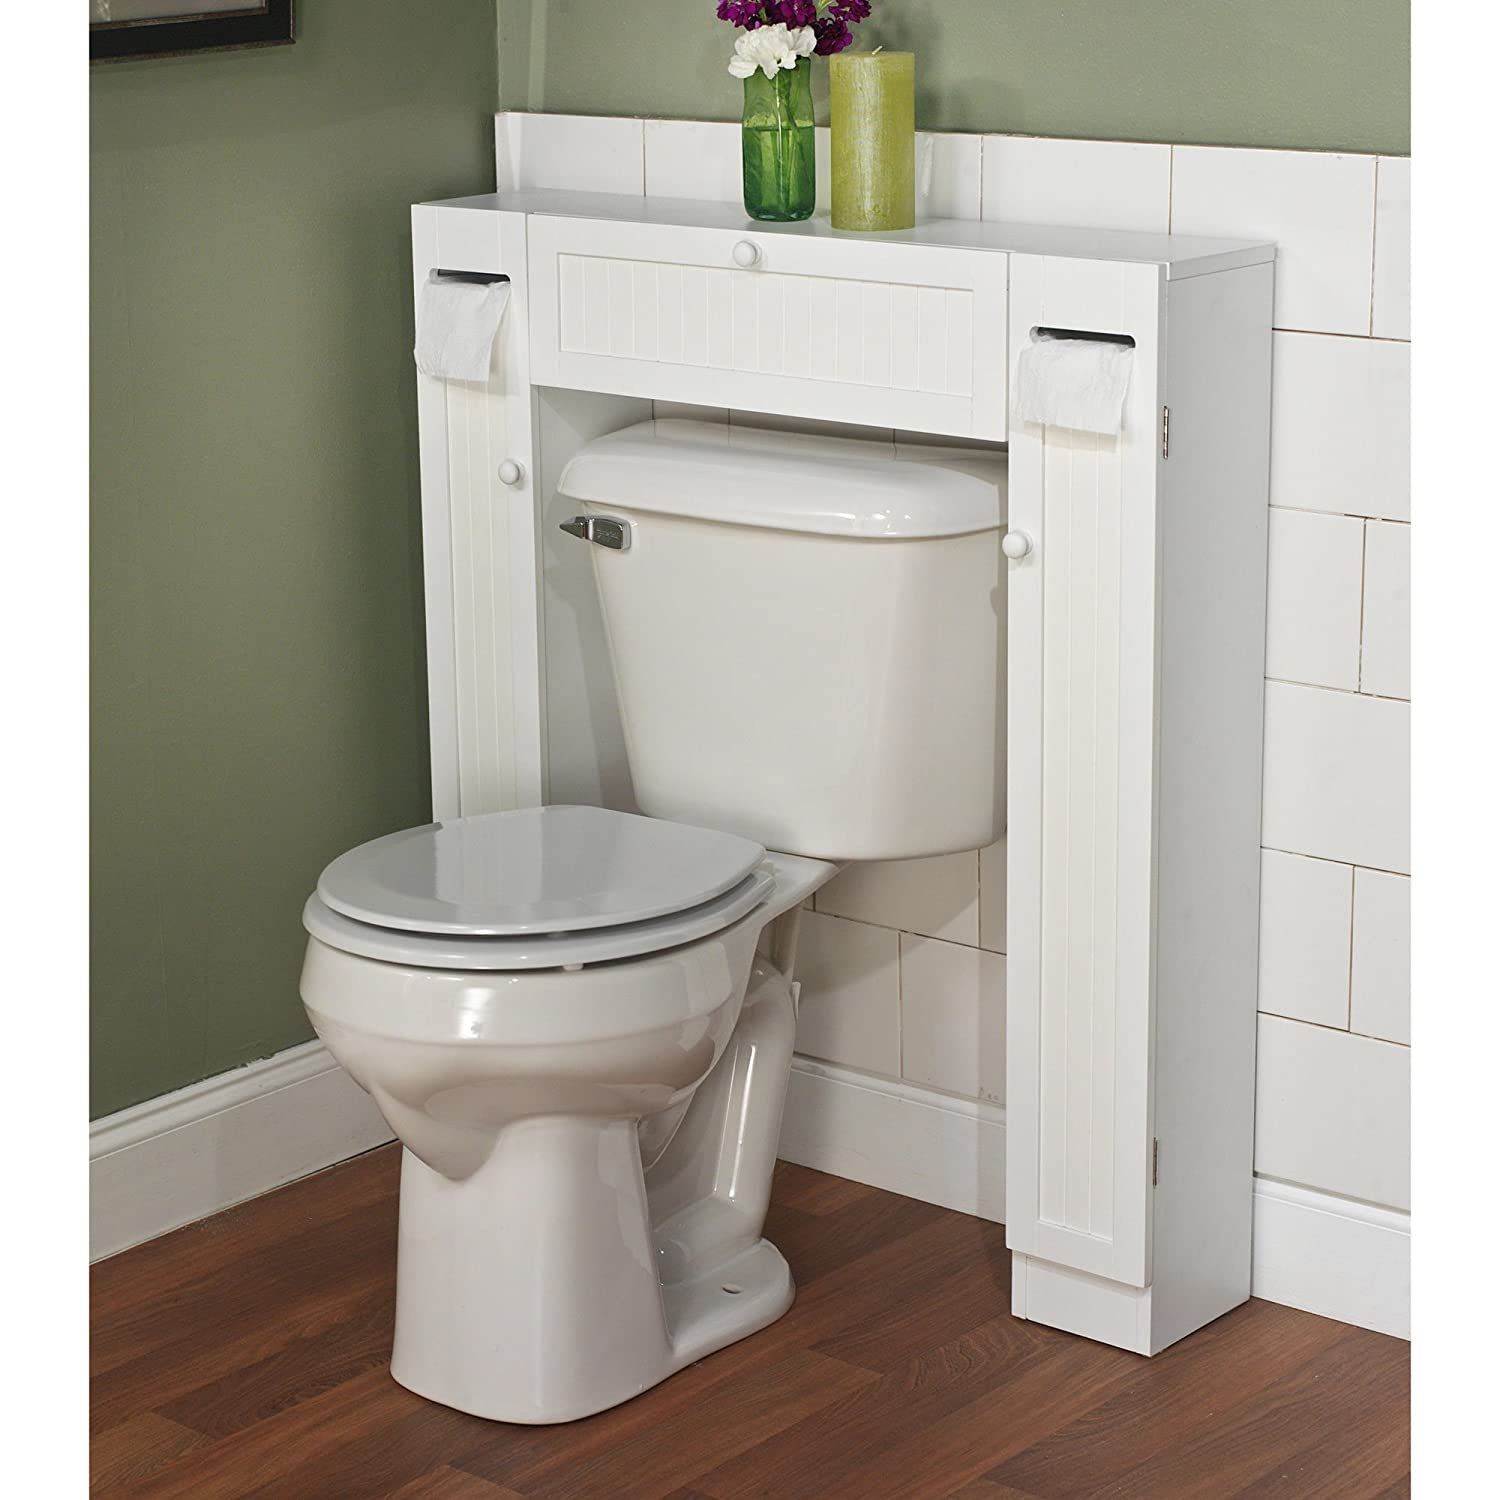 1 center cabinet and 2 side cabinets in white wood material gives extra storage for every bathroom kitchen u0026 dining